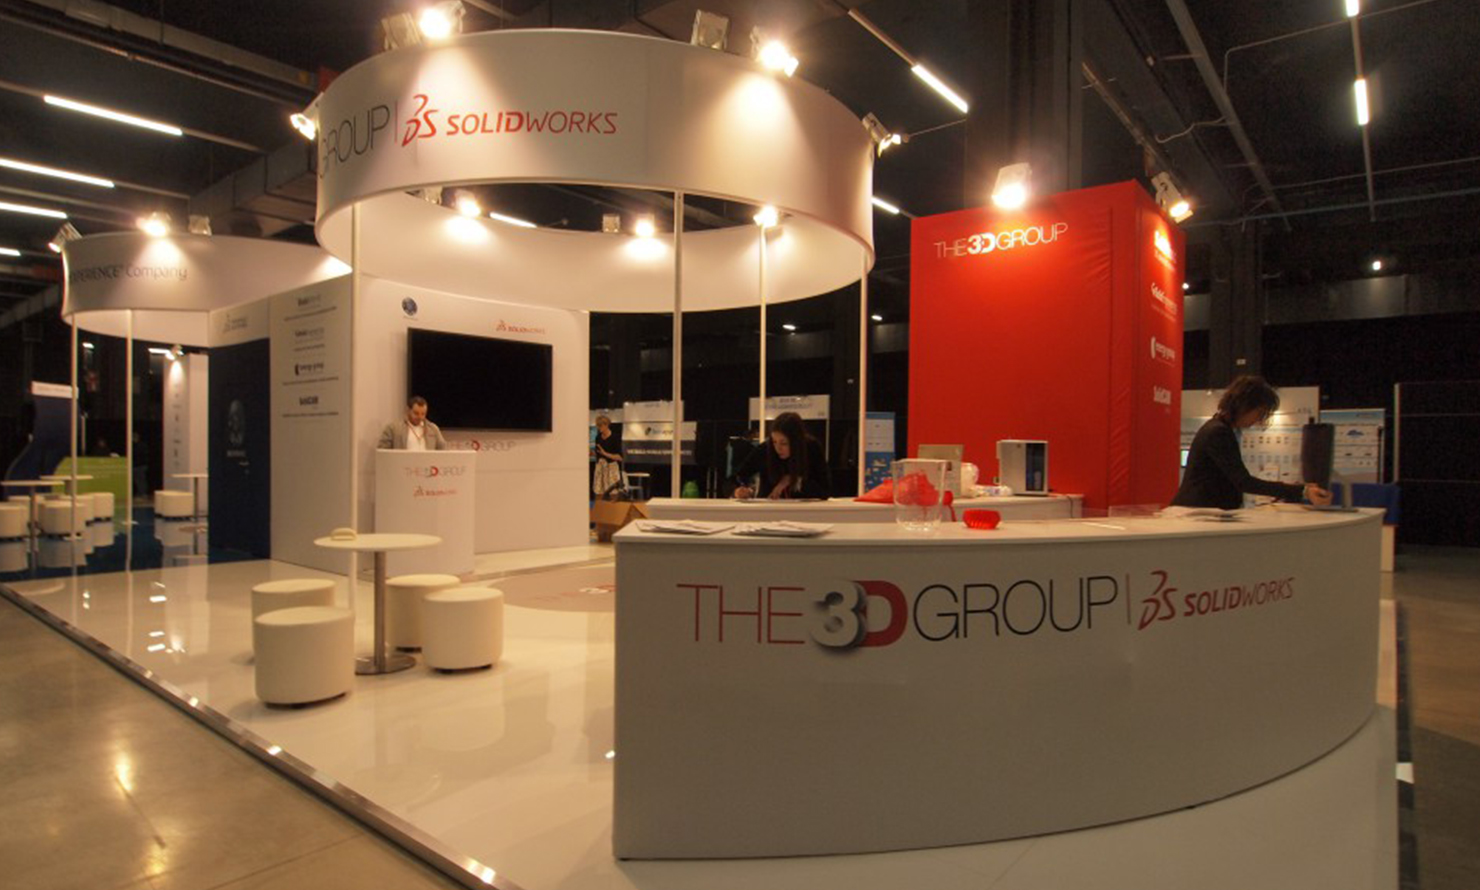 https://www.kubelibre.com/uploads/Slider-work-tutti-clienti/the3dwork-solid-world-exhibition-1.jpg